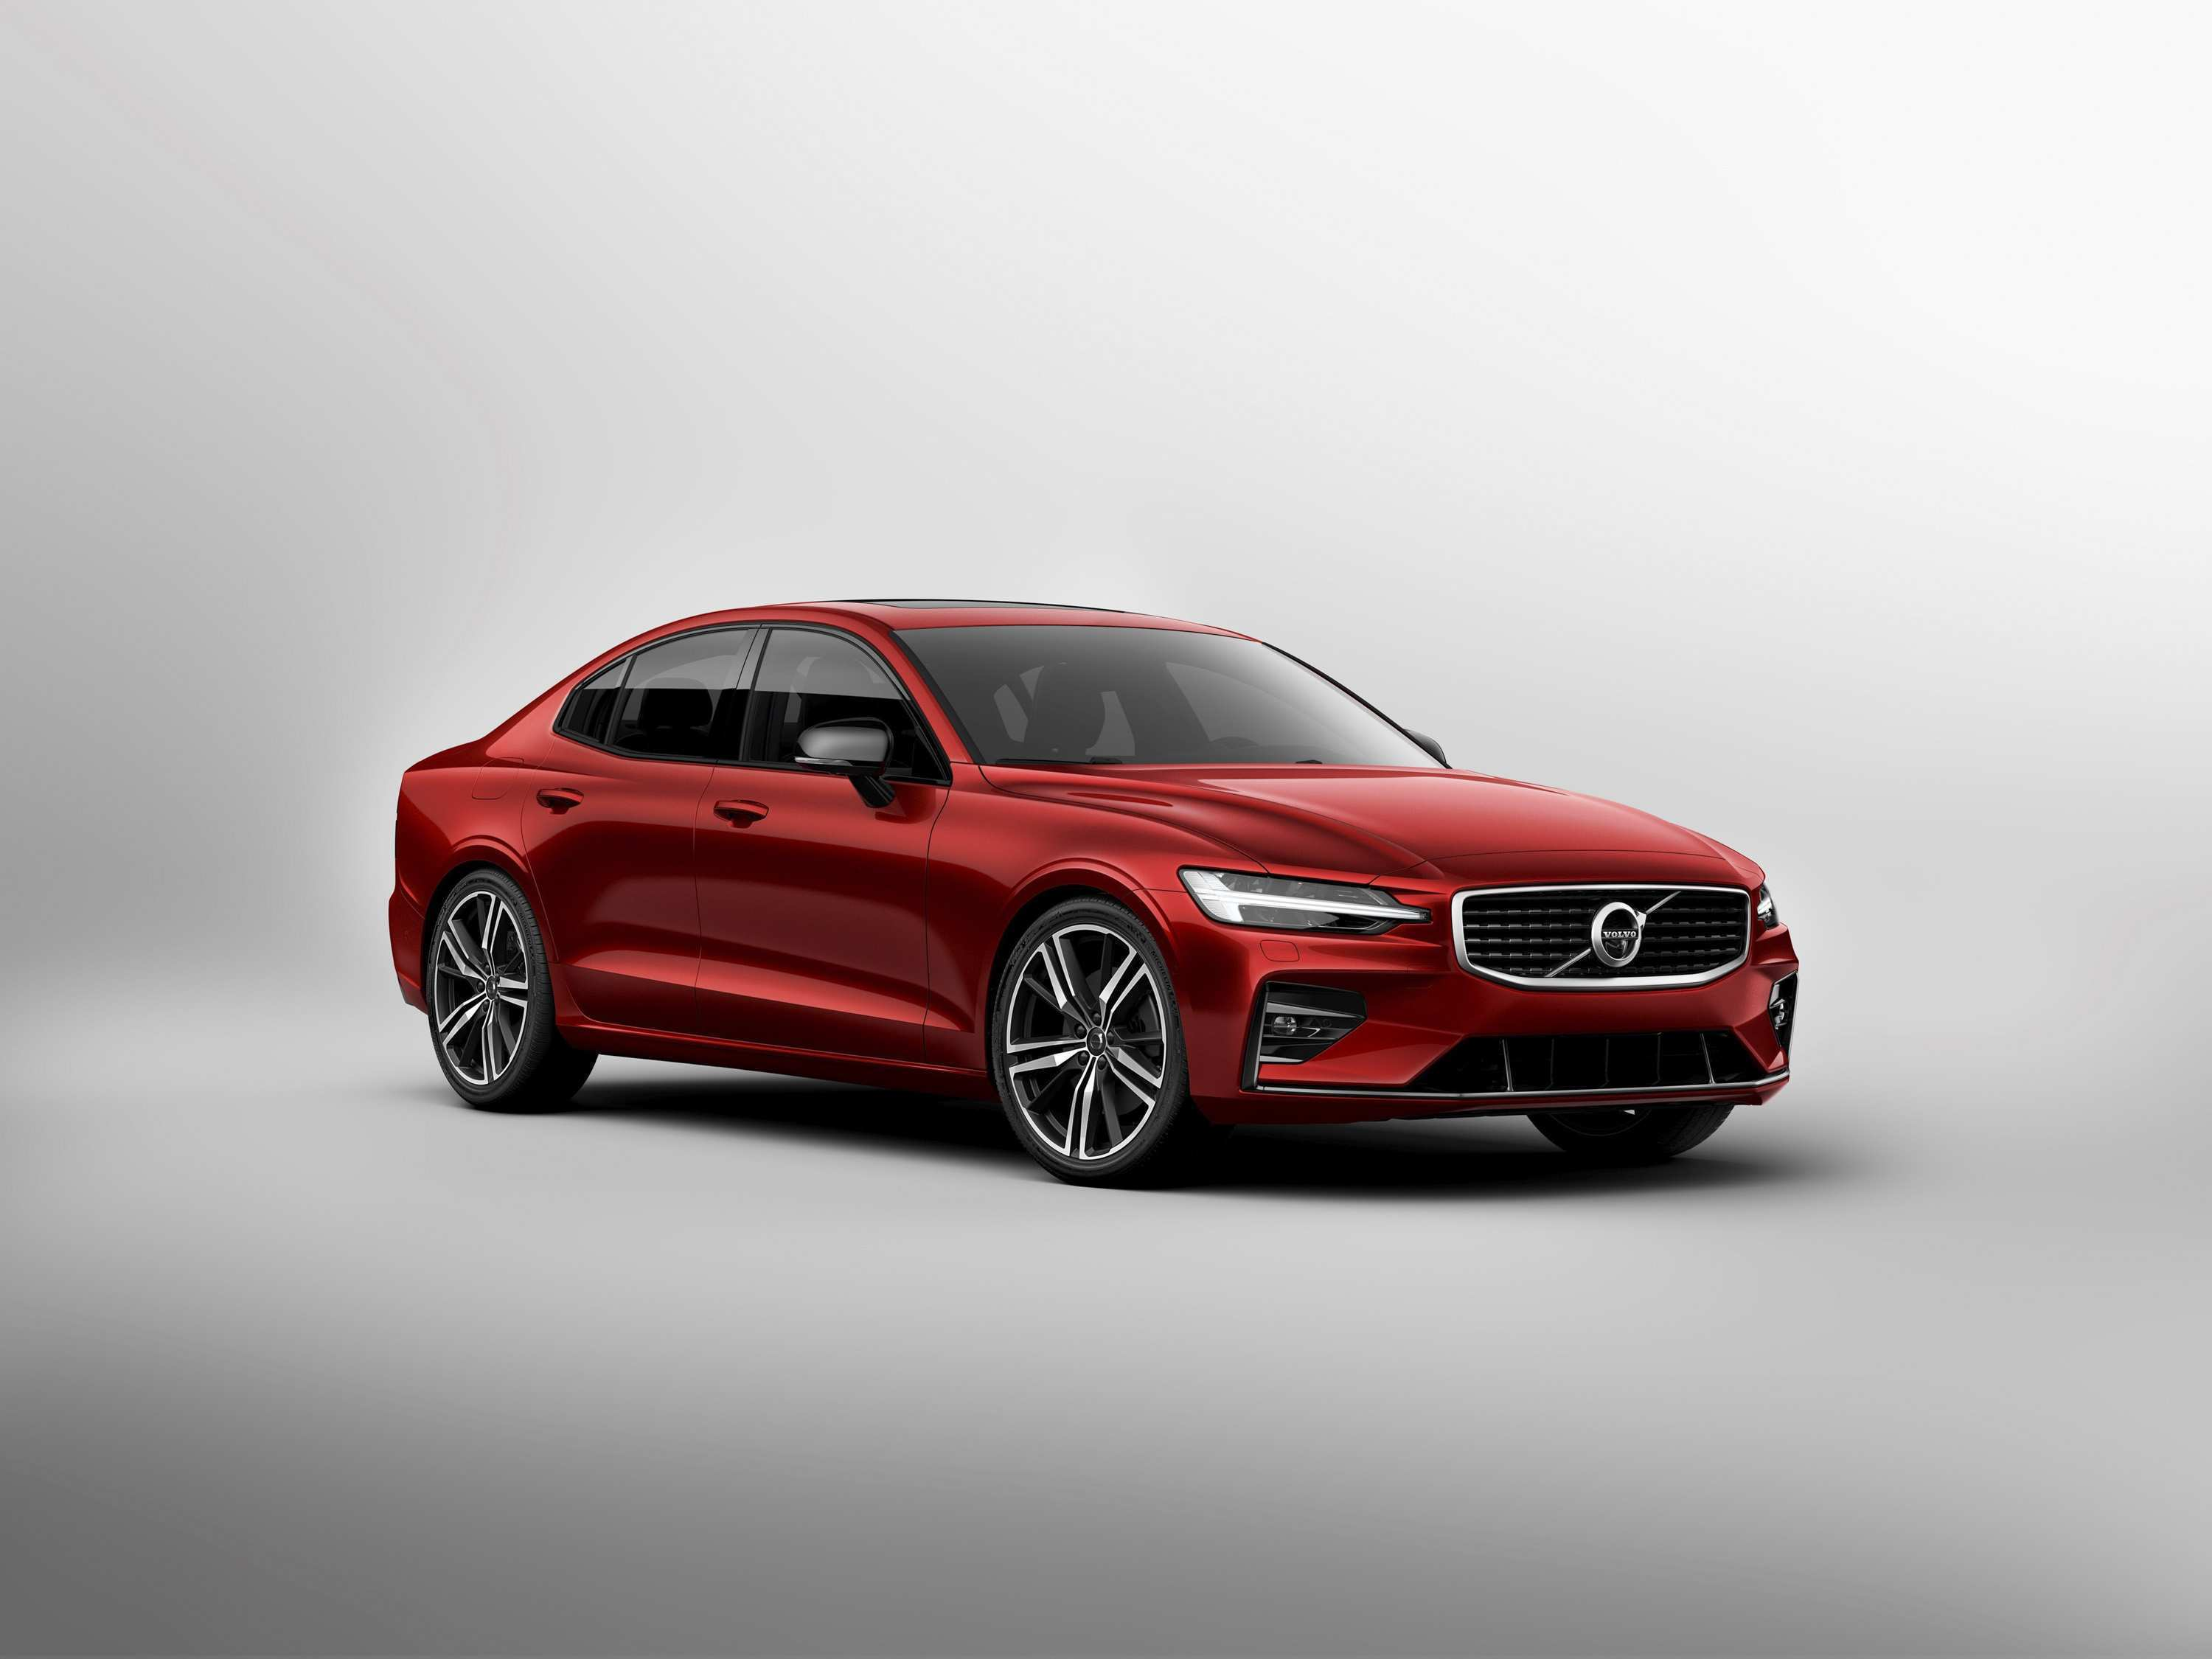 98 Best Review 2019 Volvo 860 Specs New Concept by 2019 Volvo 860 Specs